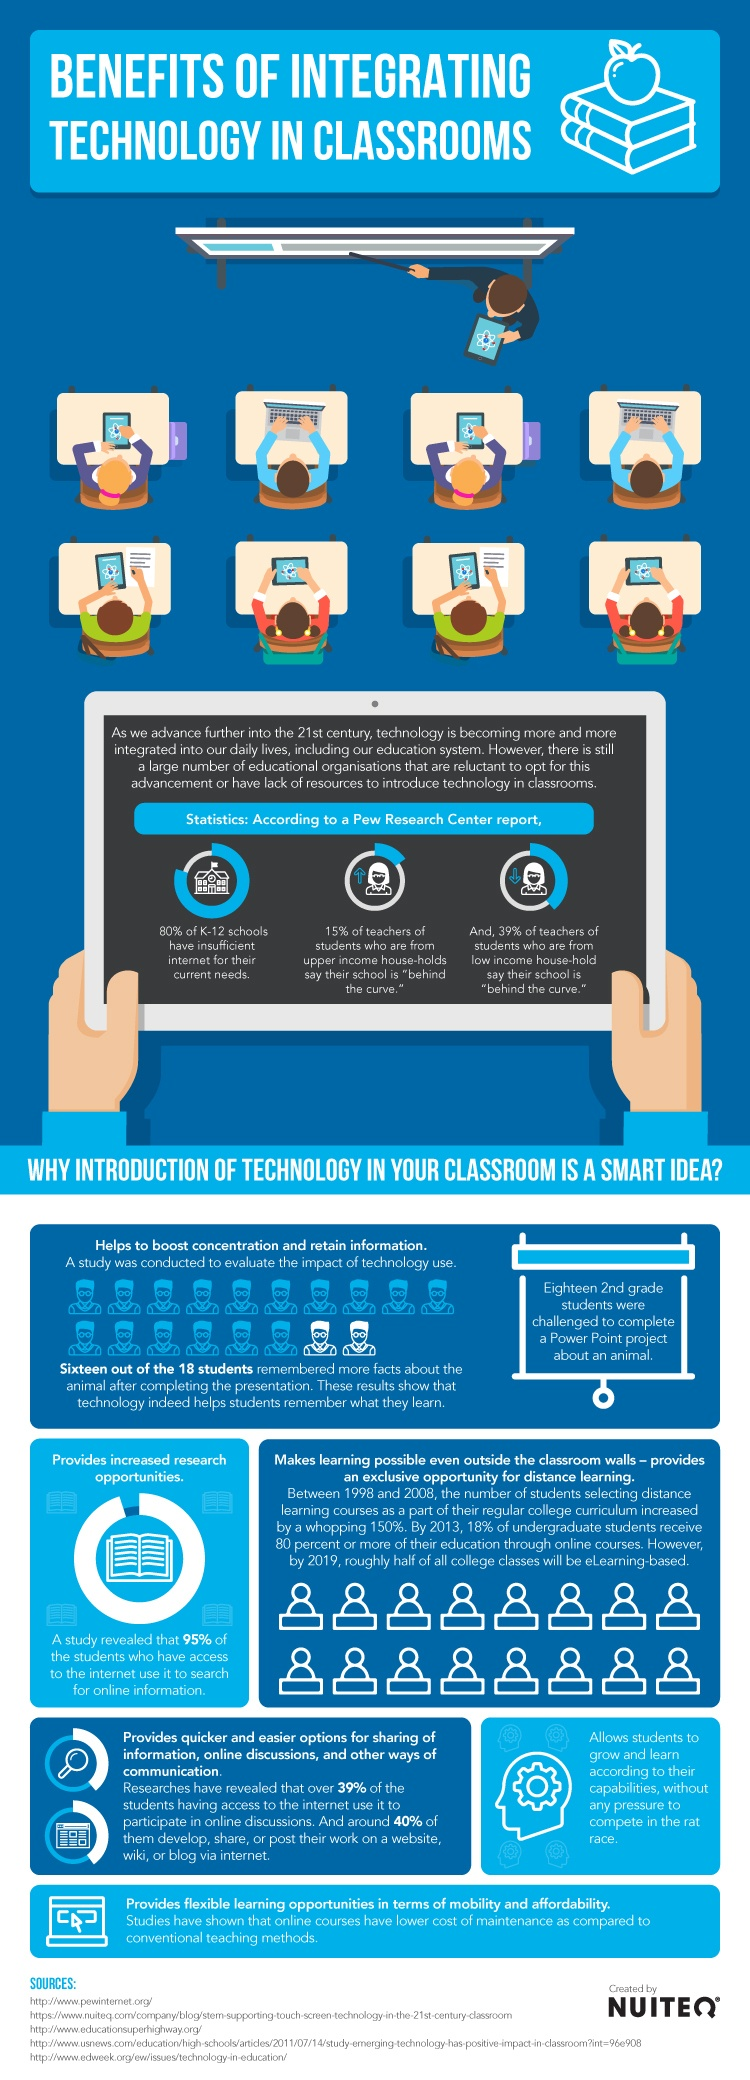 Benefits of Integrating Technology in Classrooms Infographic